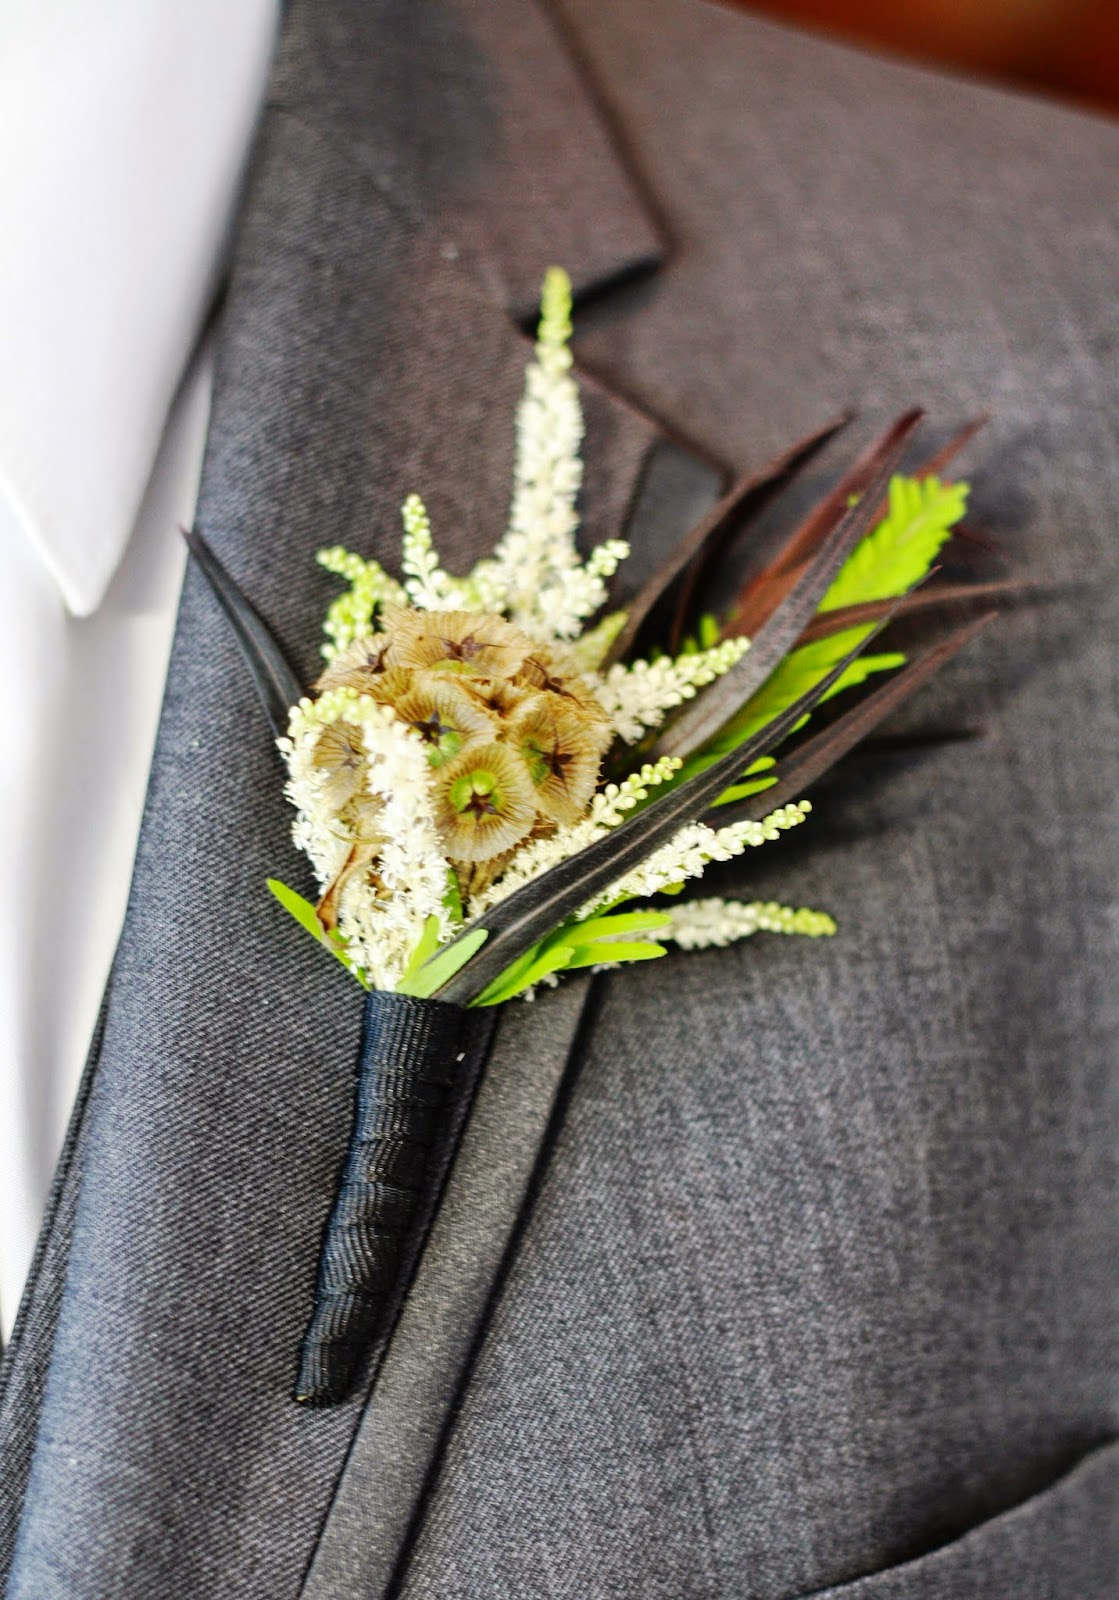 Scabiosa Pod and Astilbe Boutonniere - Boutonnieres - Wedding Flowers - Groom - Usher - Best Man - Groomsmen - Ushers - Groom's Boutonniere